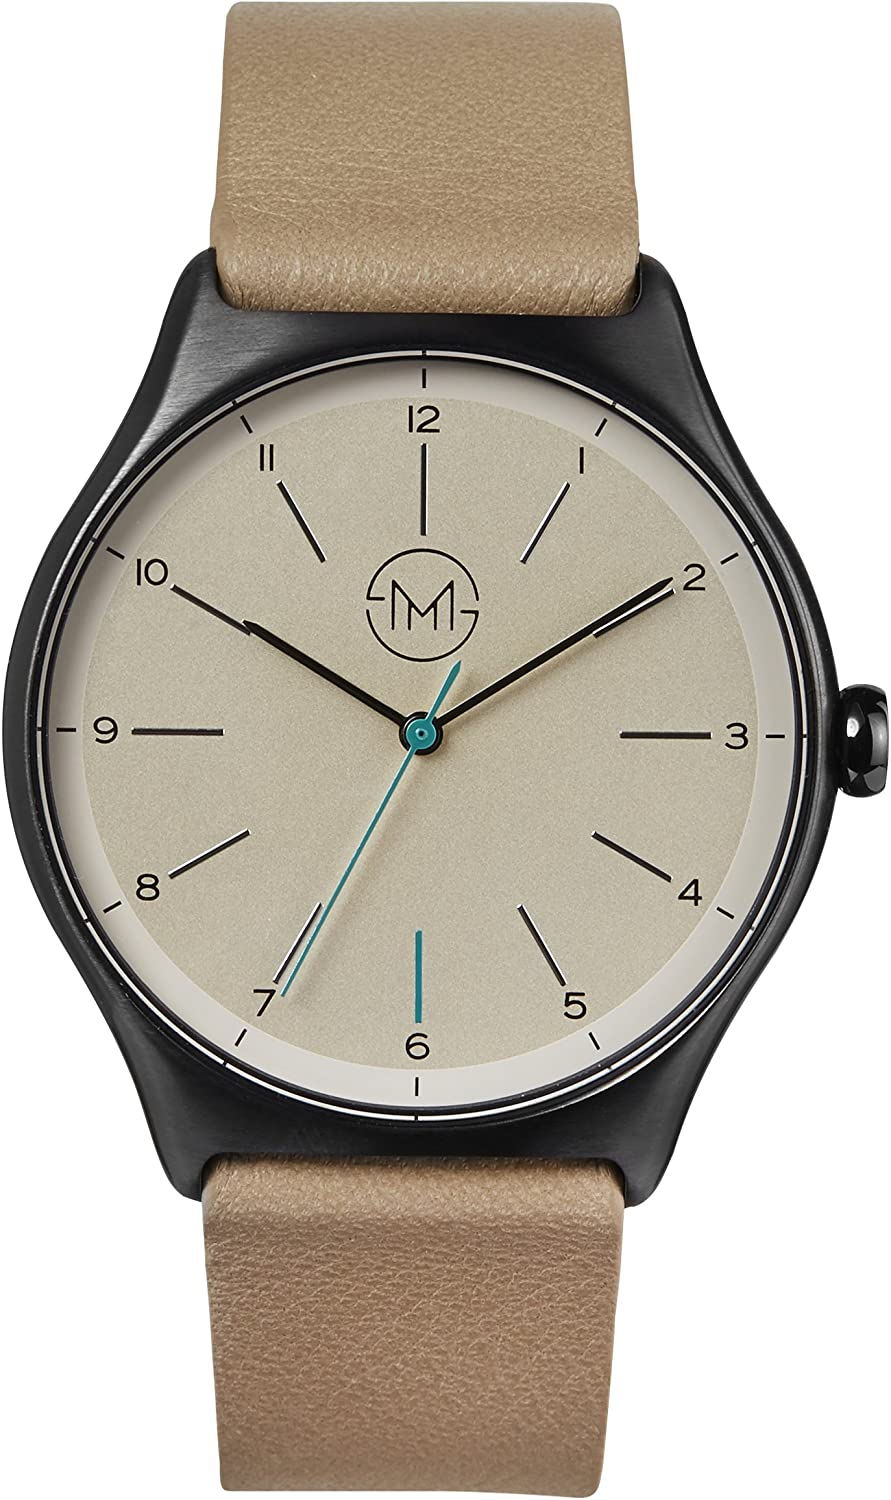 slim made one 12 – Black Case, Creme Dial, Beige Leather